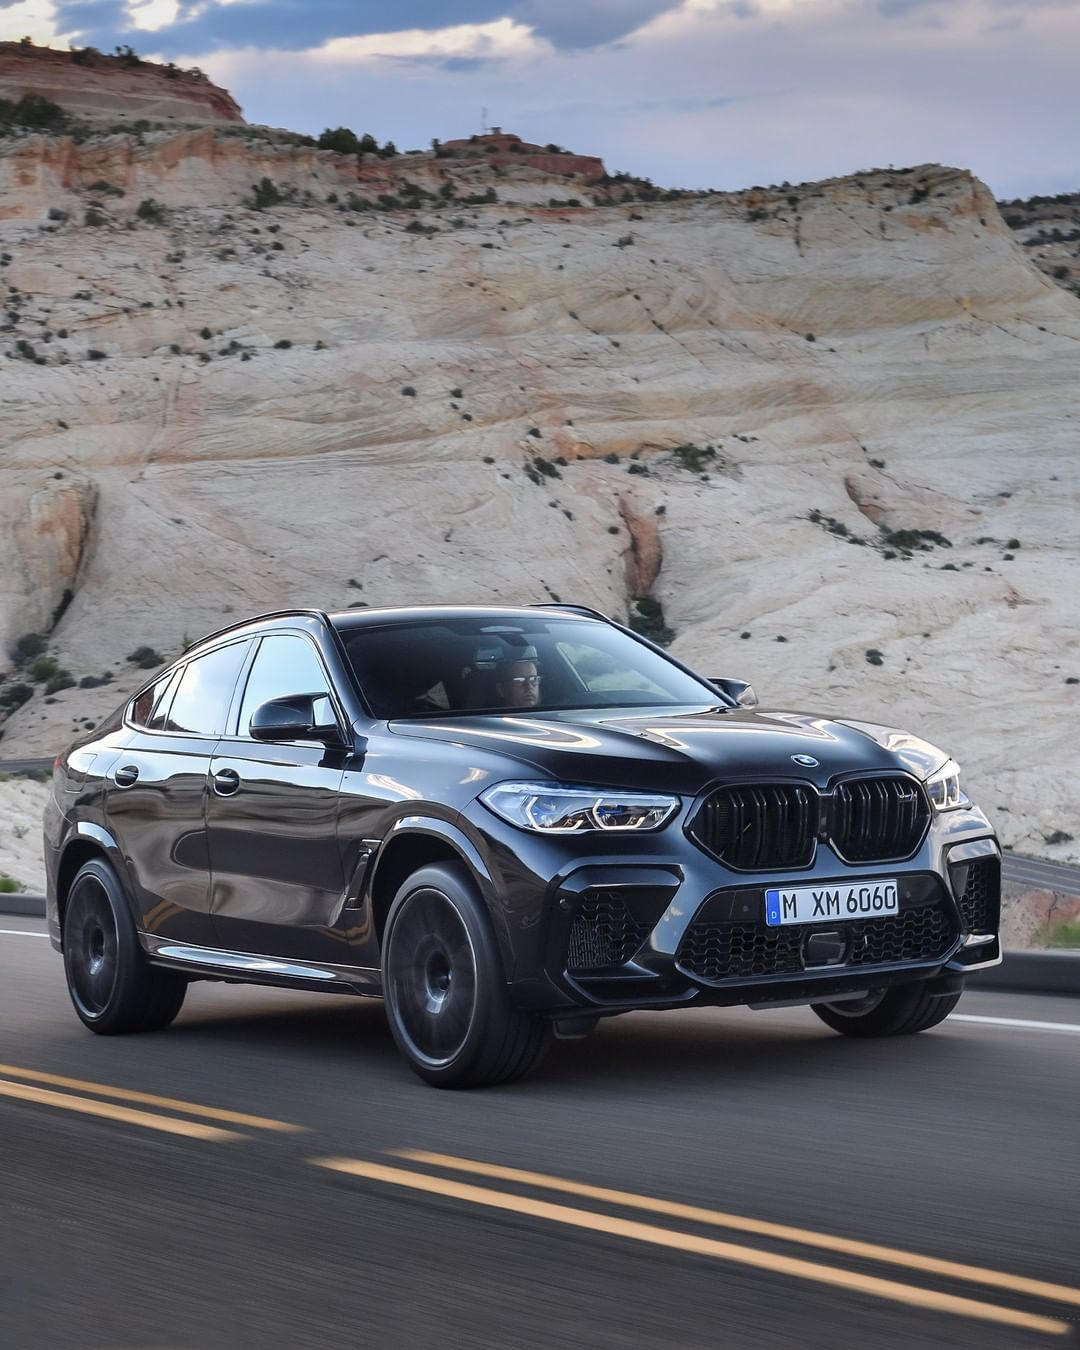 Bmw On Instagram Where Power Is Born The All New Bmw X6 M Competition Thex6m Bmw X6m Bmwm Bmw X6 M Competition Autos Exoticos Autos Carros Y Motos